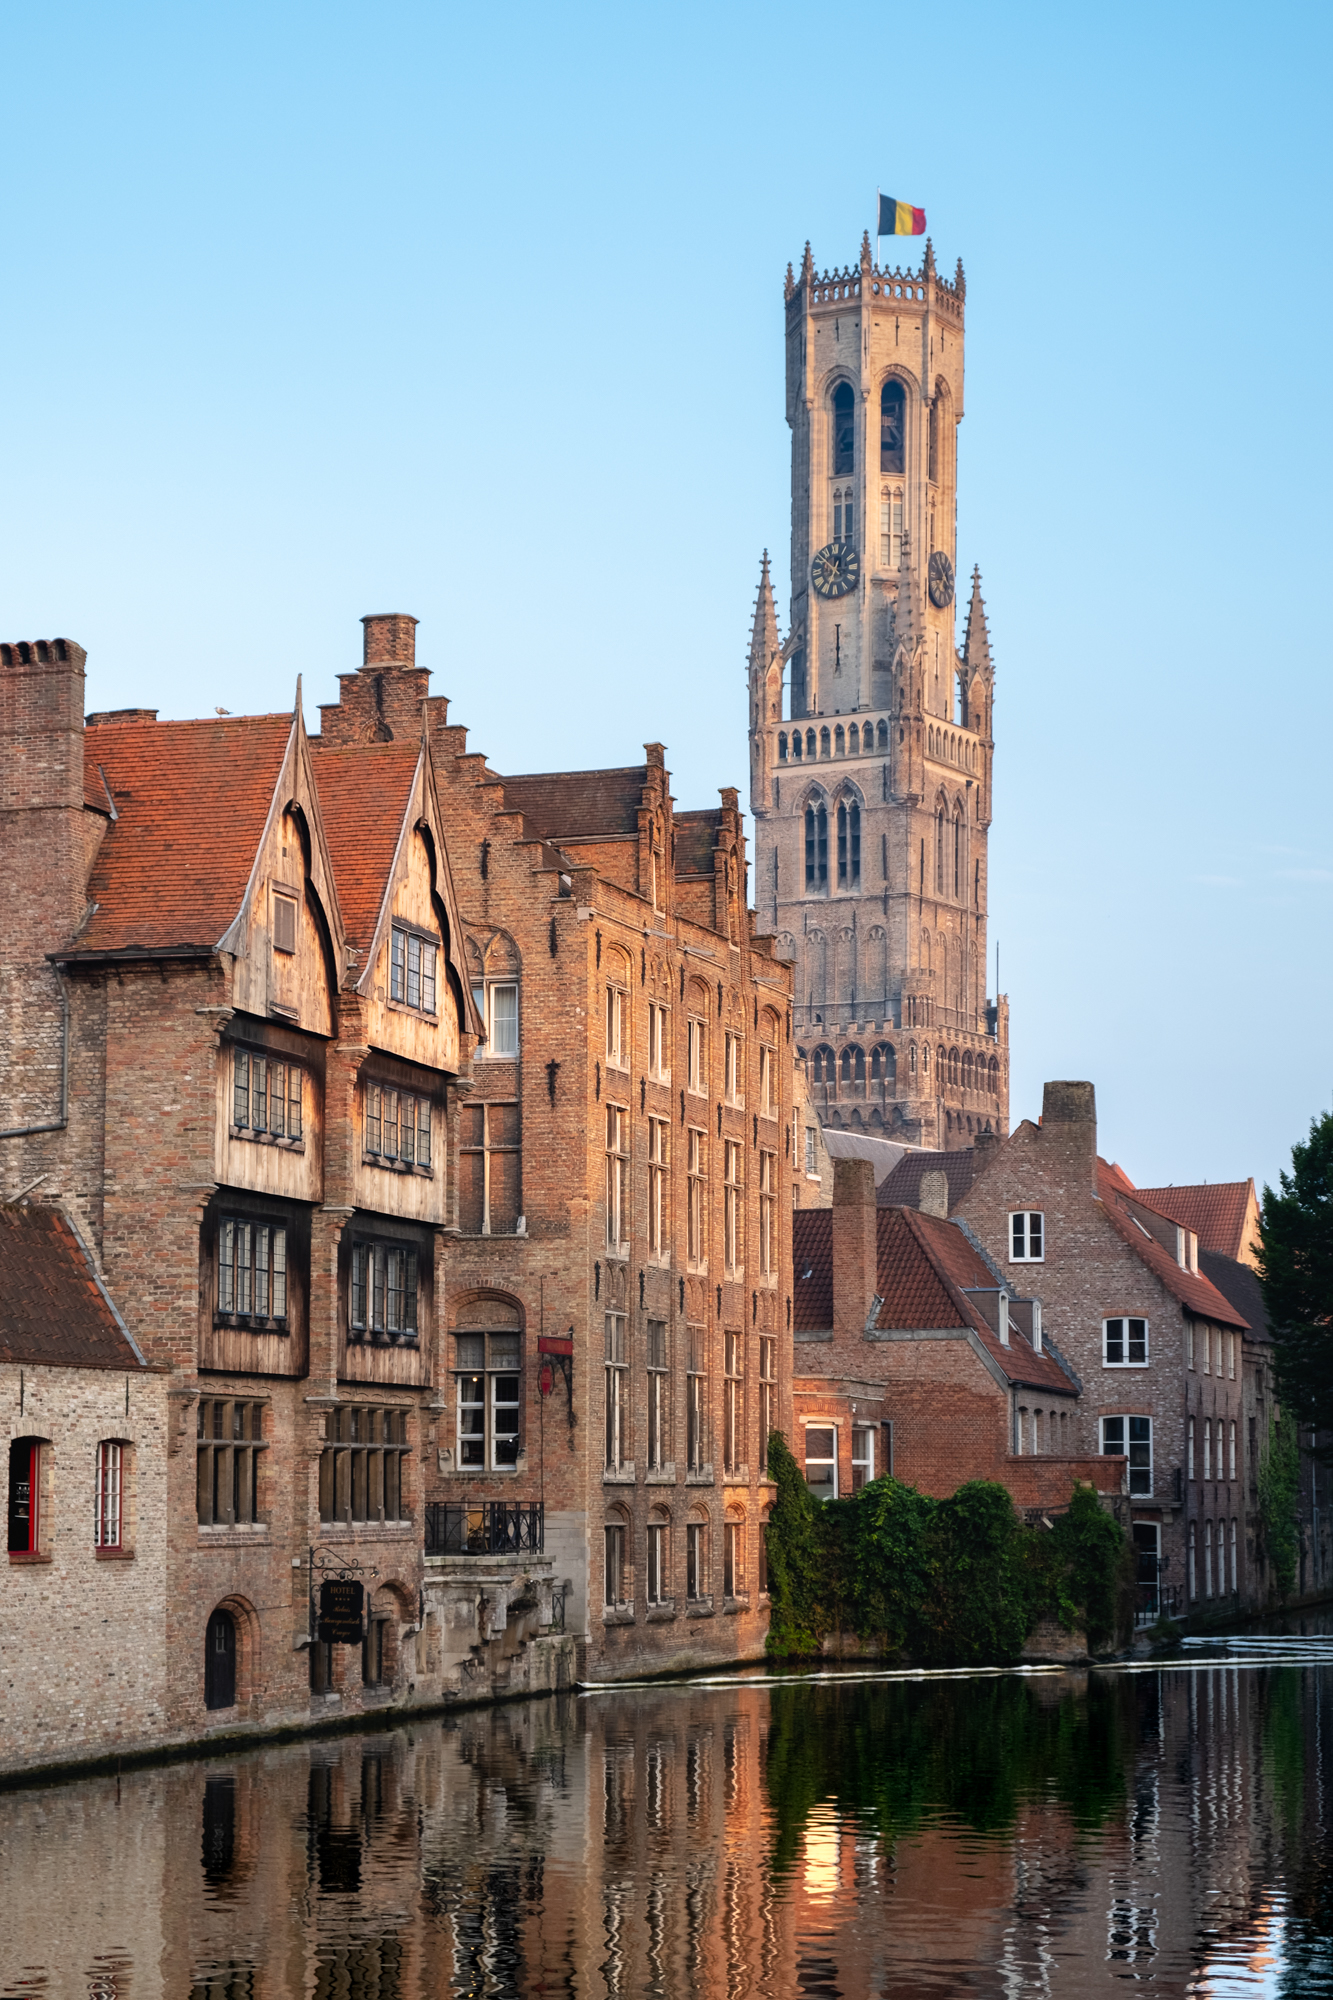 A photo of the Belfry Tower in Bruges from the Dijver Canal in Bruges, Belgium taken by Trevor Sherwin